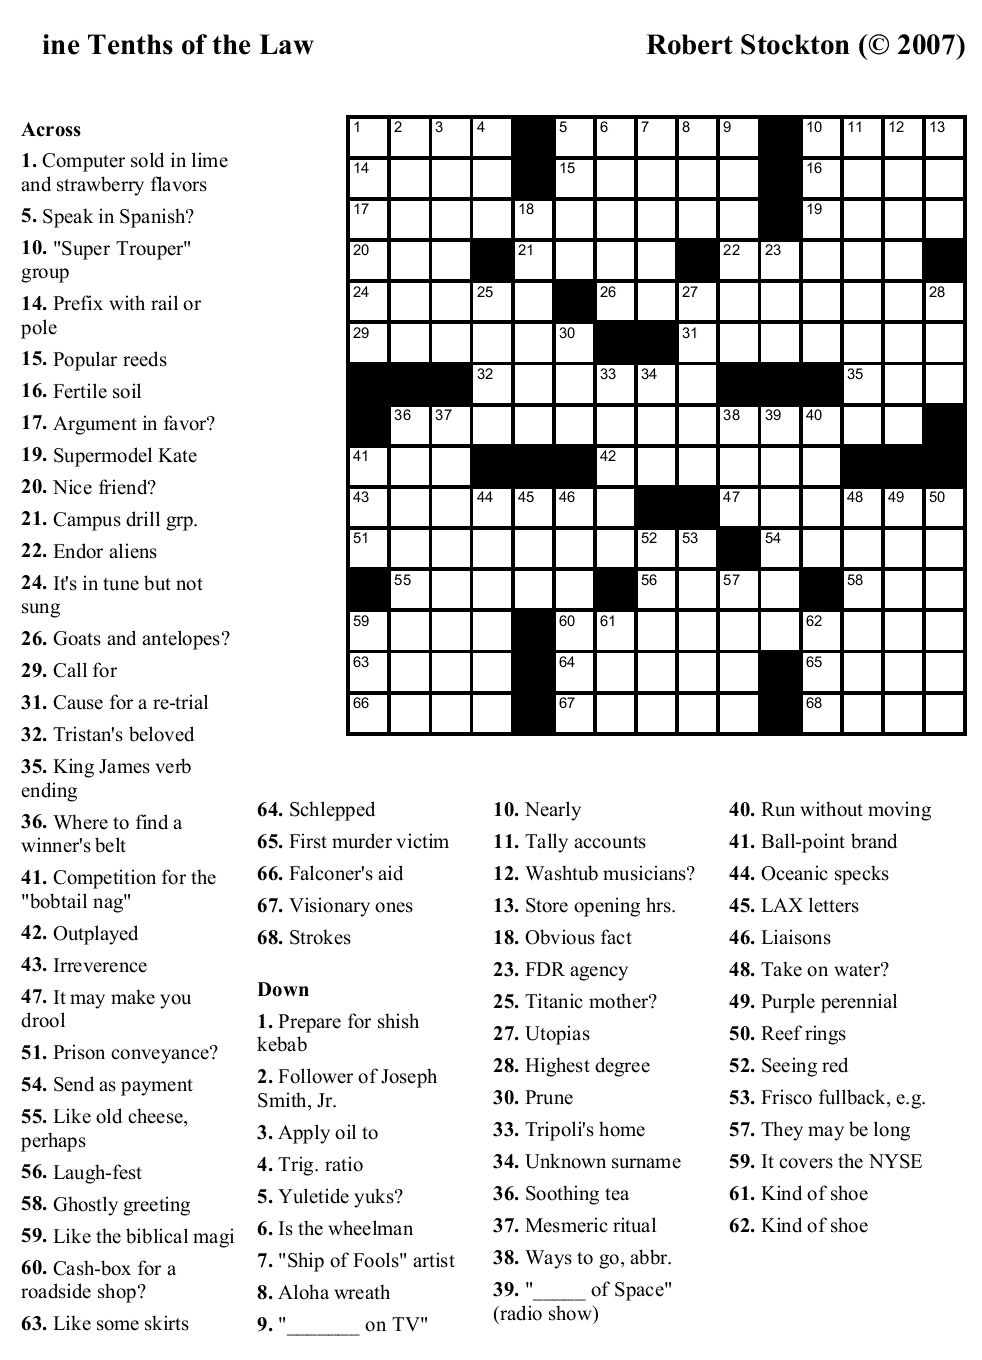 Crossword Puzzles Printable - Yahoo Image Search Results | Crossword - Free Printable Crossword Puzzles With Solutions